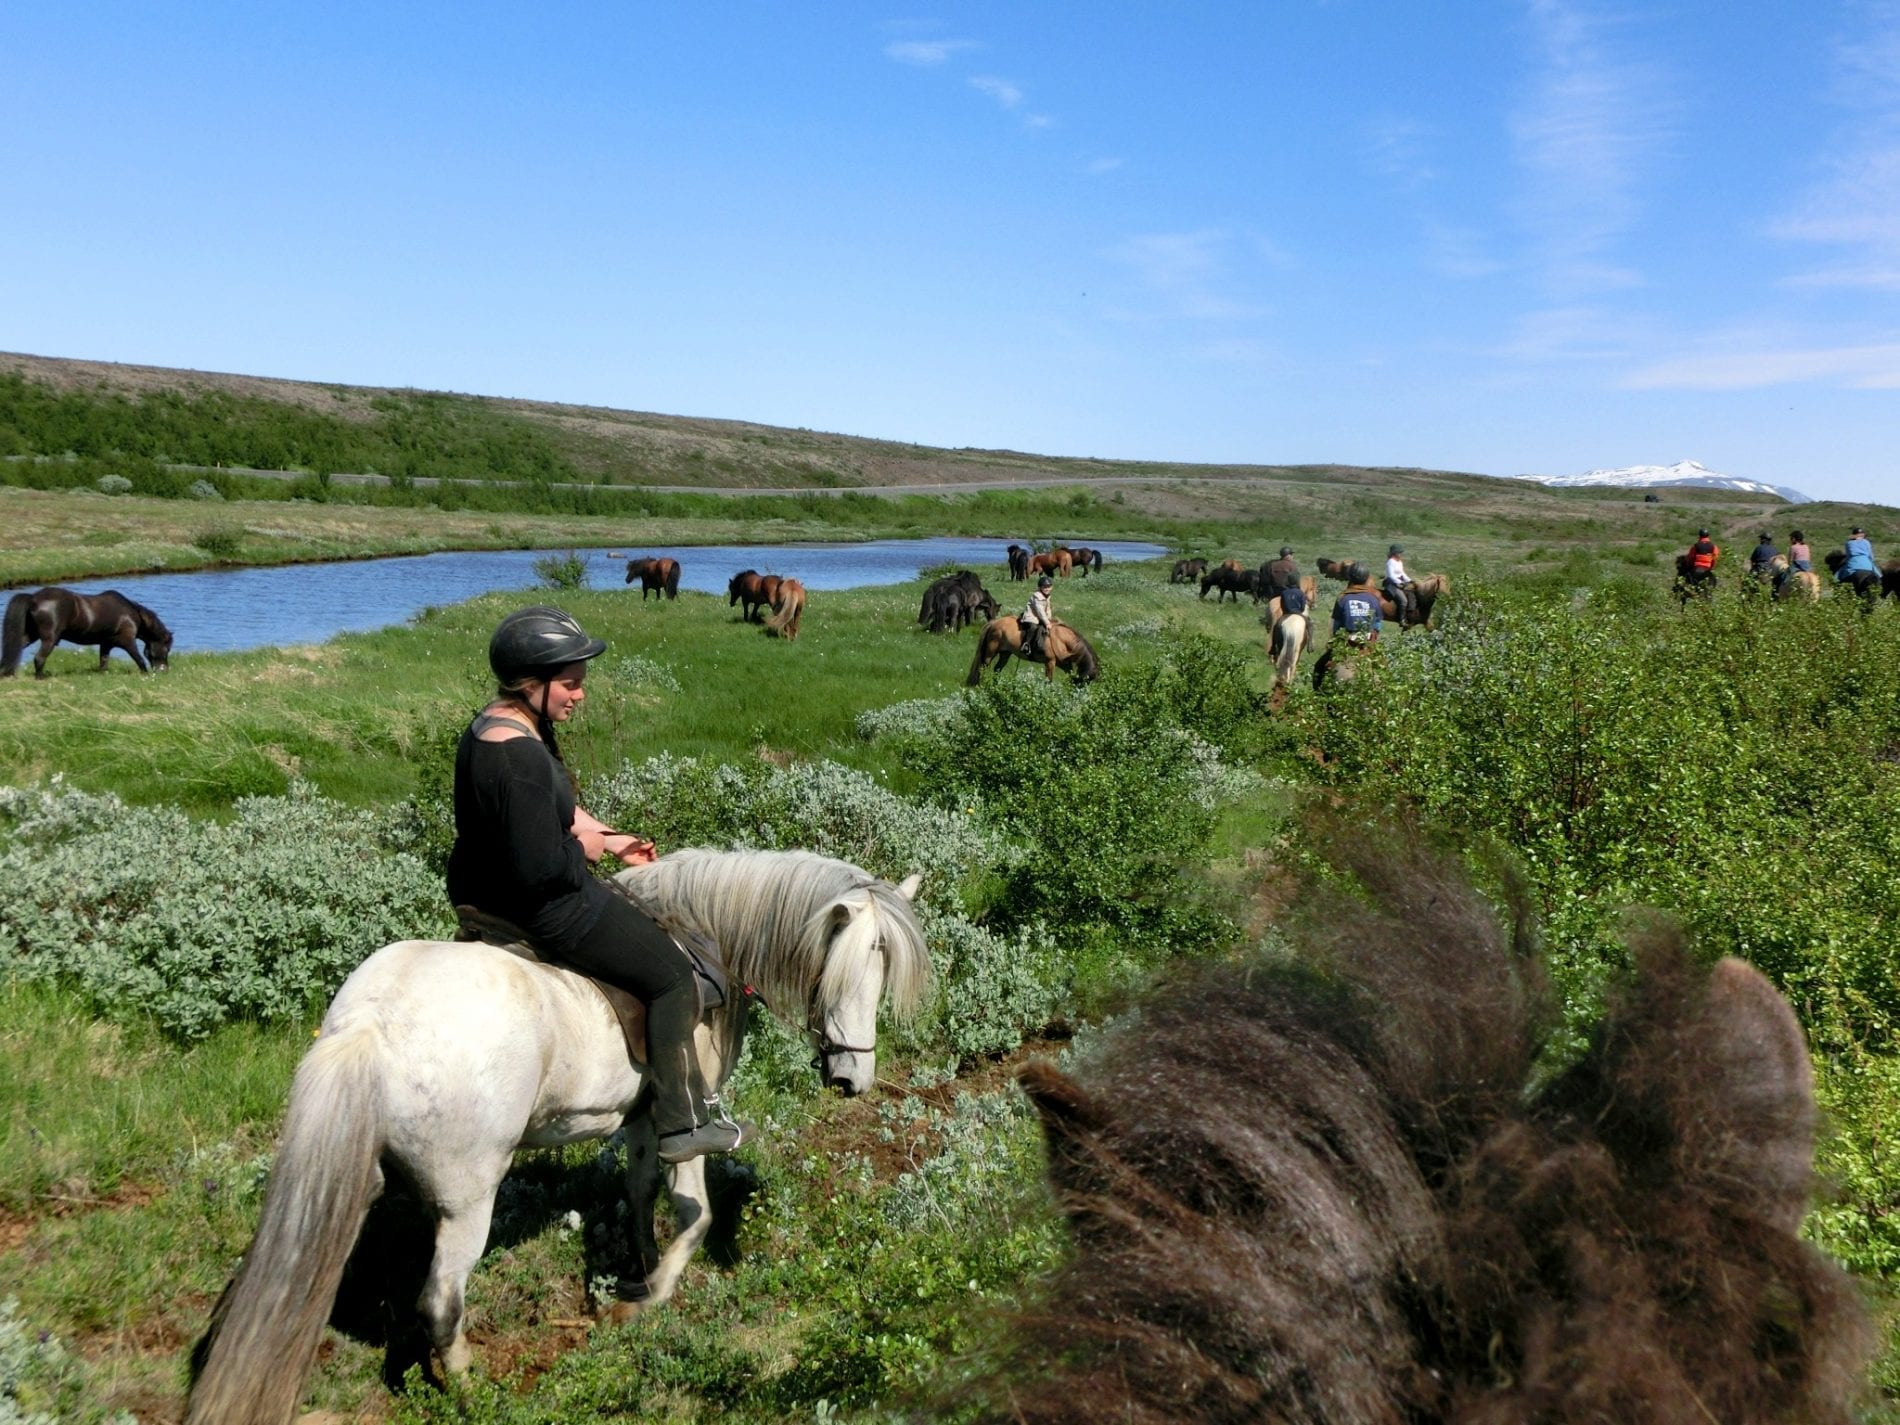 Horses pause to bite grass by a river. Shrubs and bushes under blue sky.